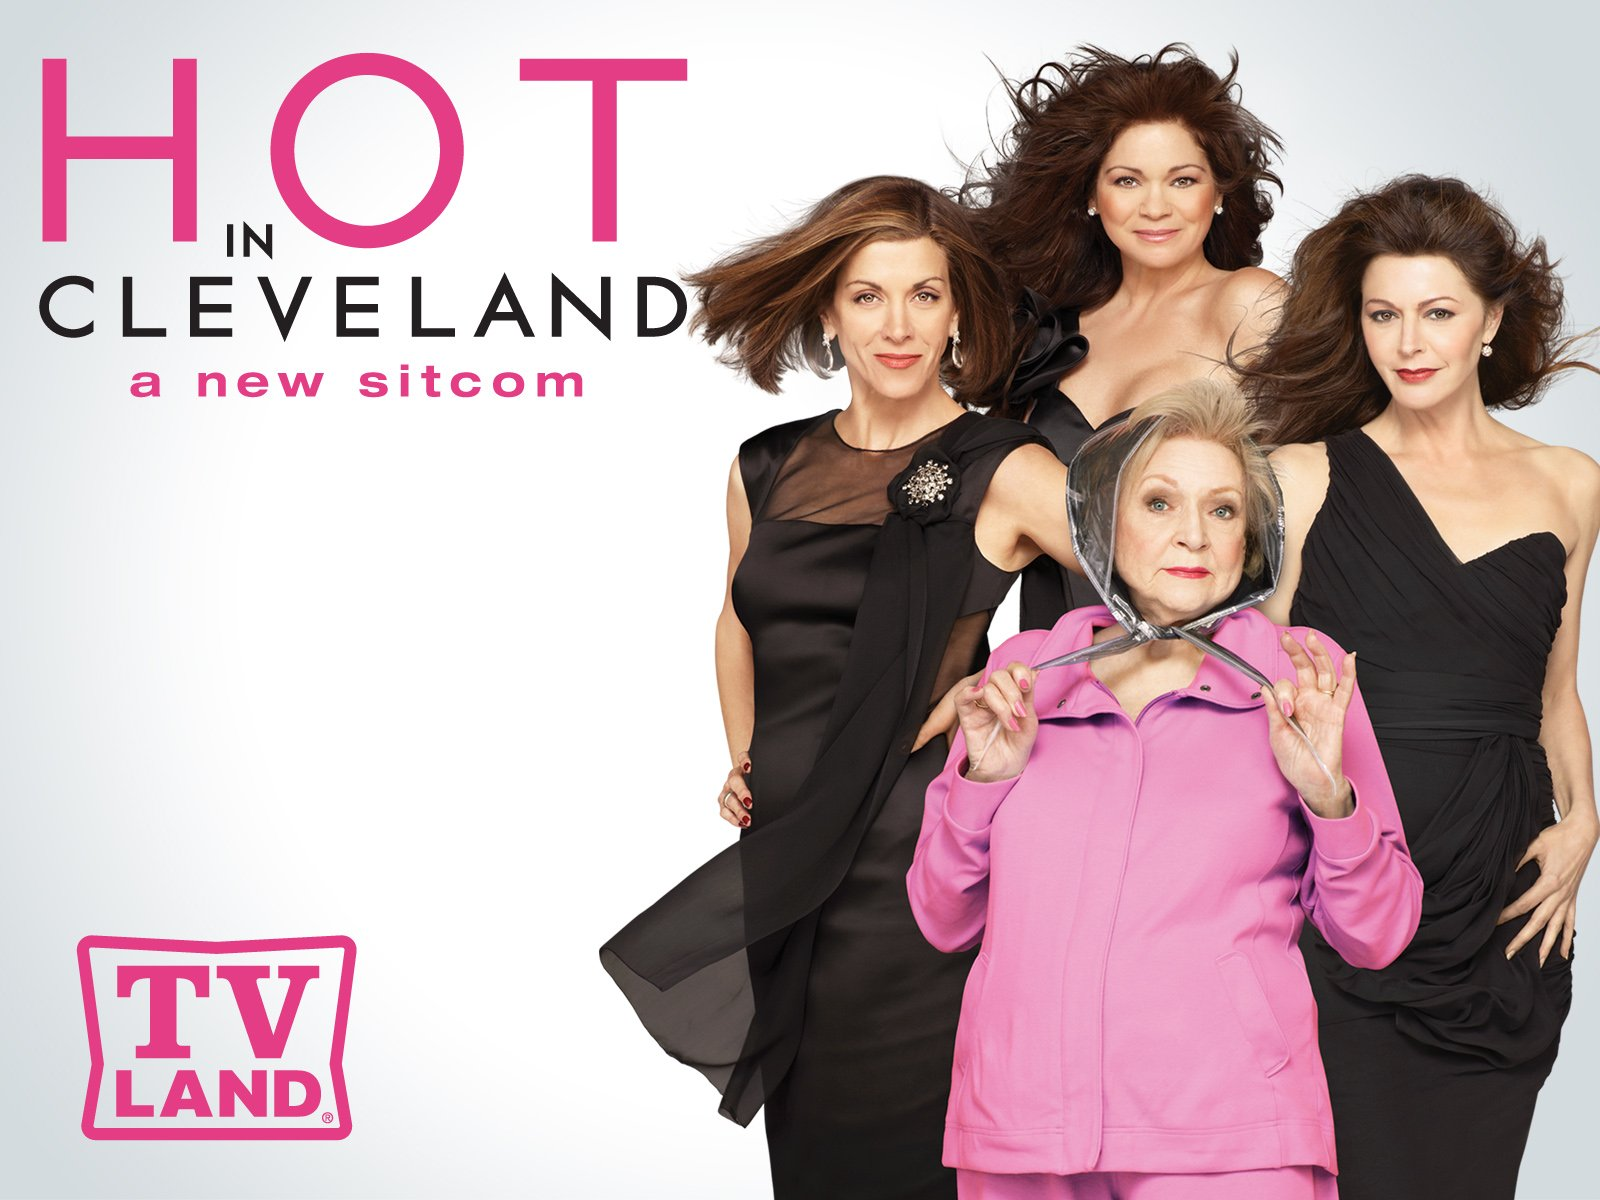 Amazon.com: Hot in Cleveland Season 1: Betty White, Valerie Bertinelli, Wendie Malick, Jane Leeves: Amazon Digital Services LLC